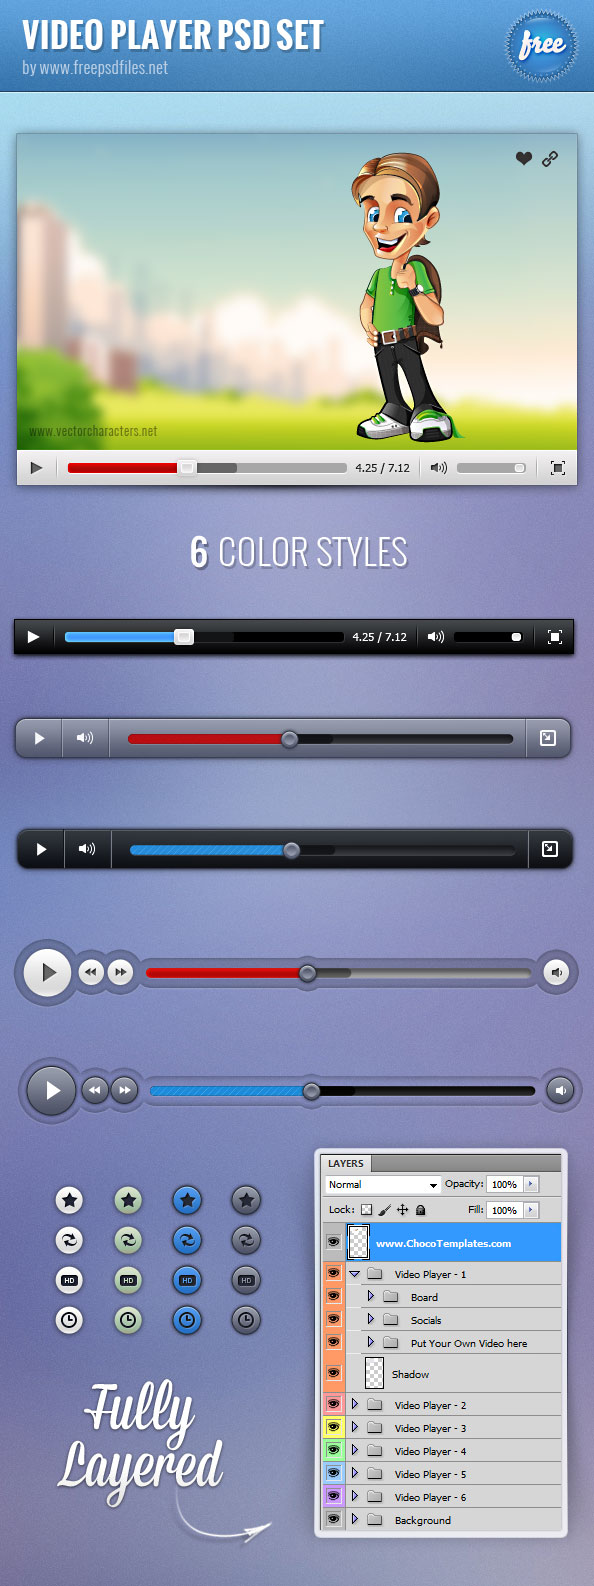 20 Exceptional Free PSD Web Elements for Designers 16